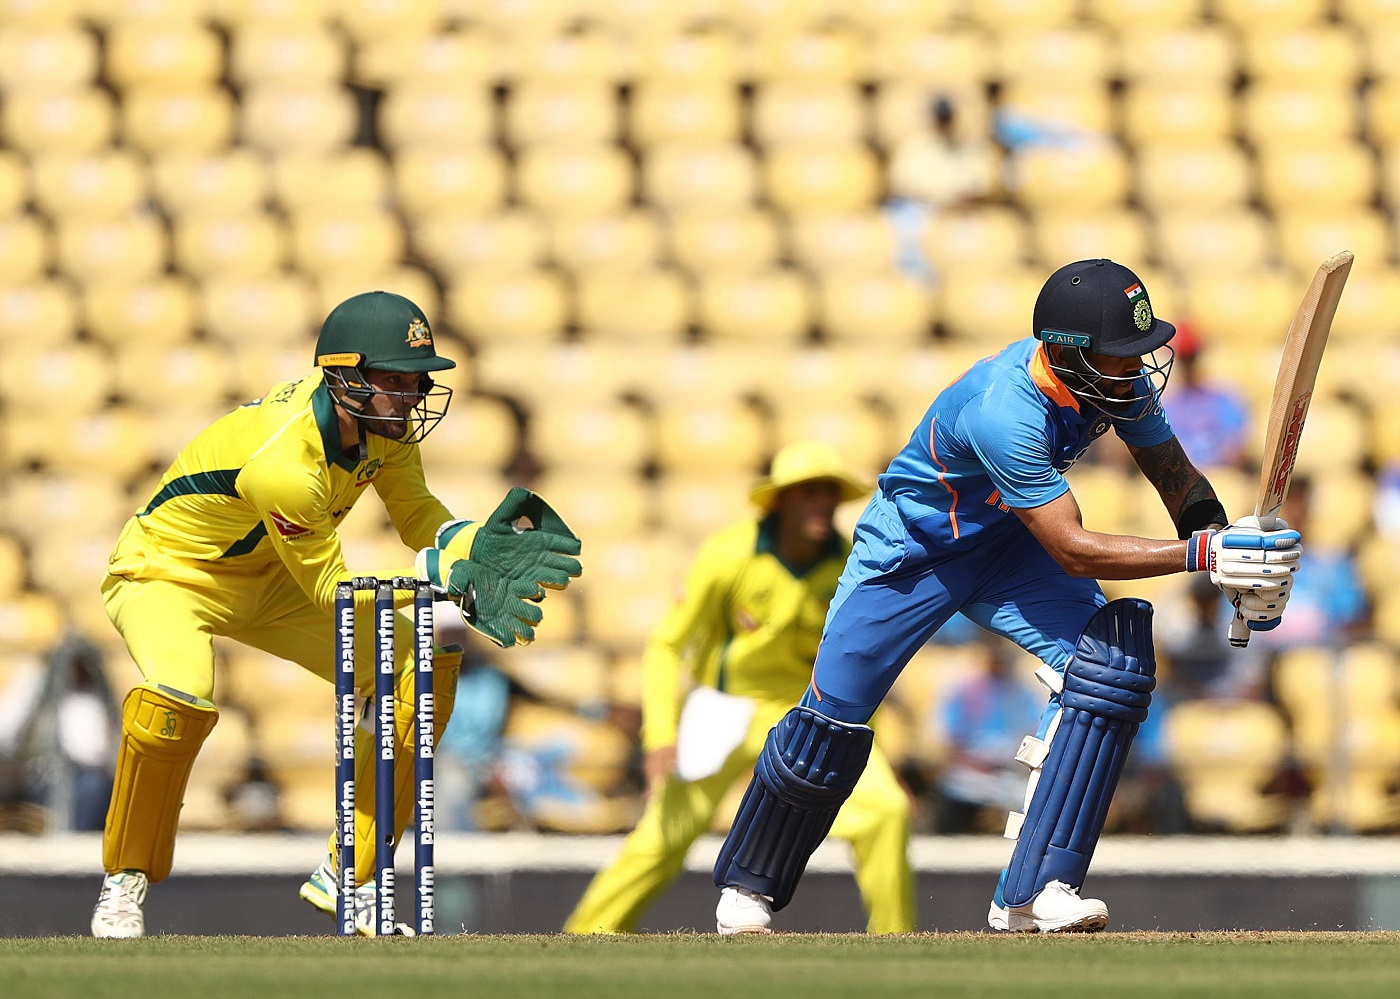 Full Scorecard Of India Vs Australia 2nd Odi 2019 Score Report Espncricinfo Com India live stream online if you are registered member of bet365, the leading online betting company that has streaming coverage for more than 140.000 live sports events with live betting during the year. https www espncricinfo com series aus in ind 2018 19 1168237 india vs australia 2nd odi 1168243 full scorecard